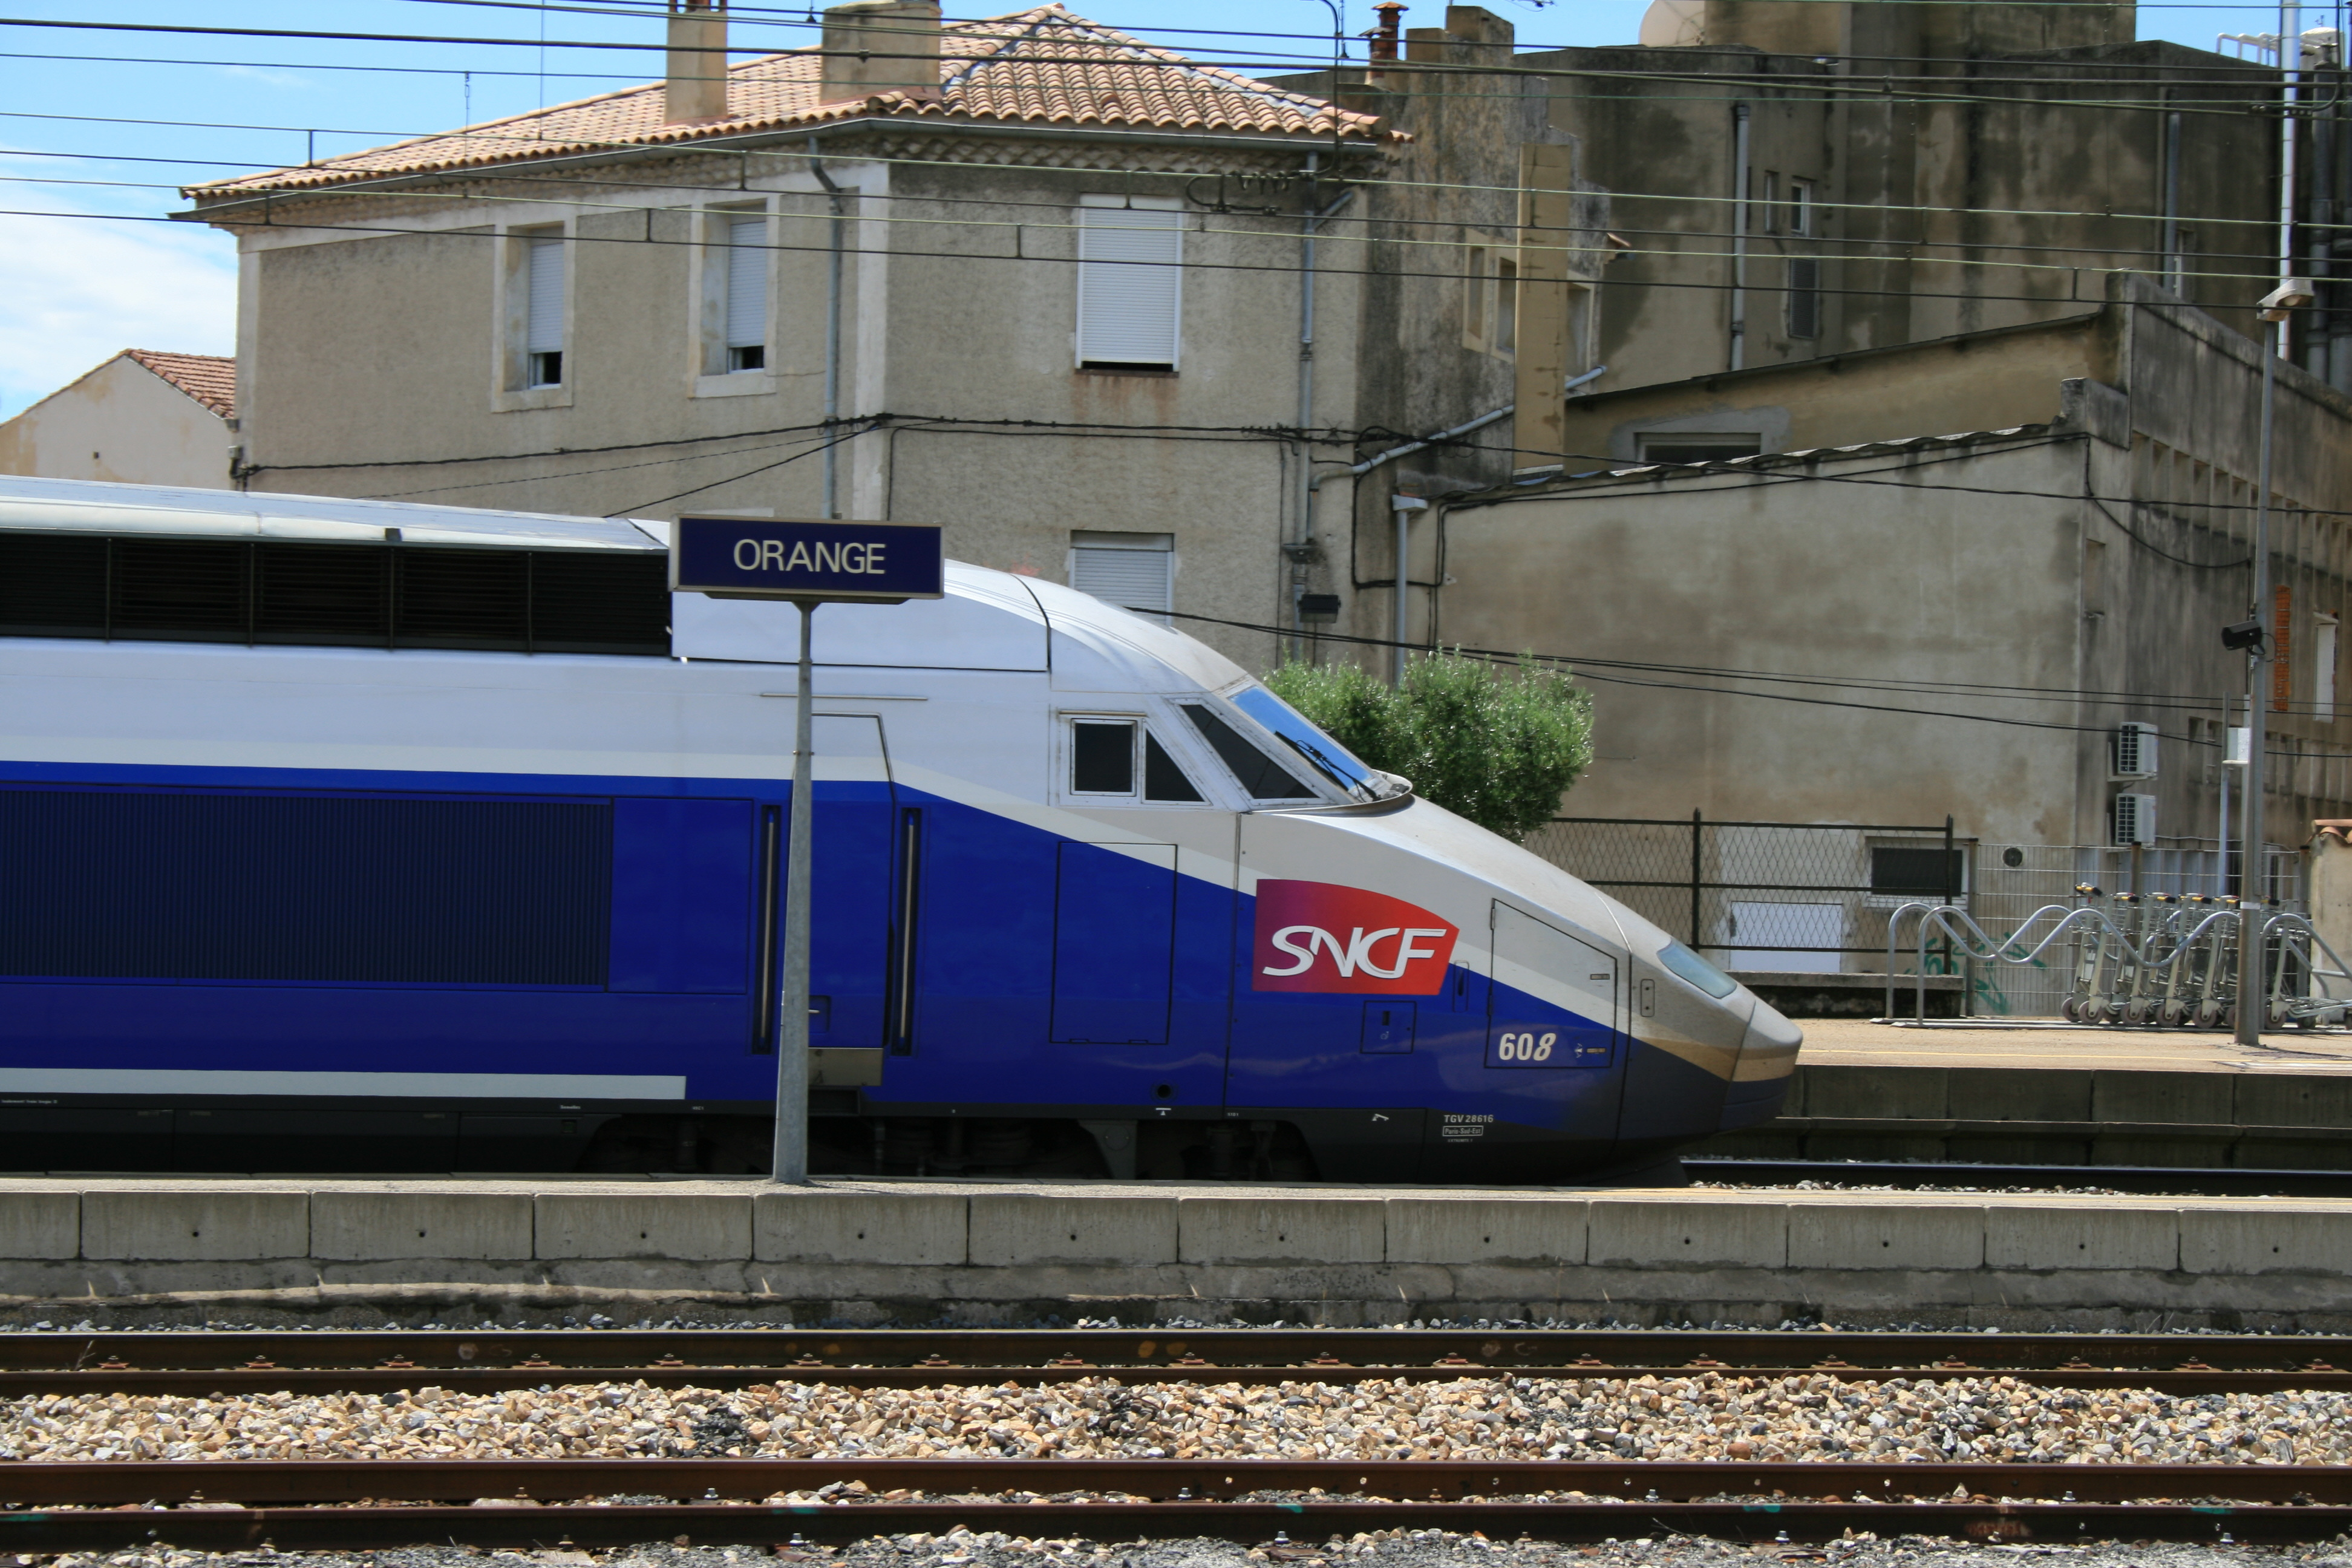 tgv French railway workers set to strike nationwide on 3 april 2018 sncf traffic throughout france will be disrupted by a rail strike starting monday, 2 april at 1900.